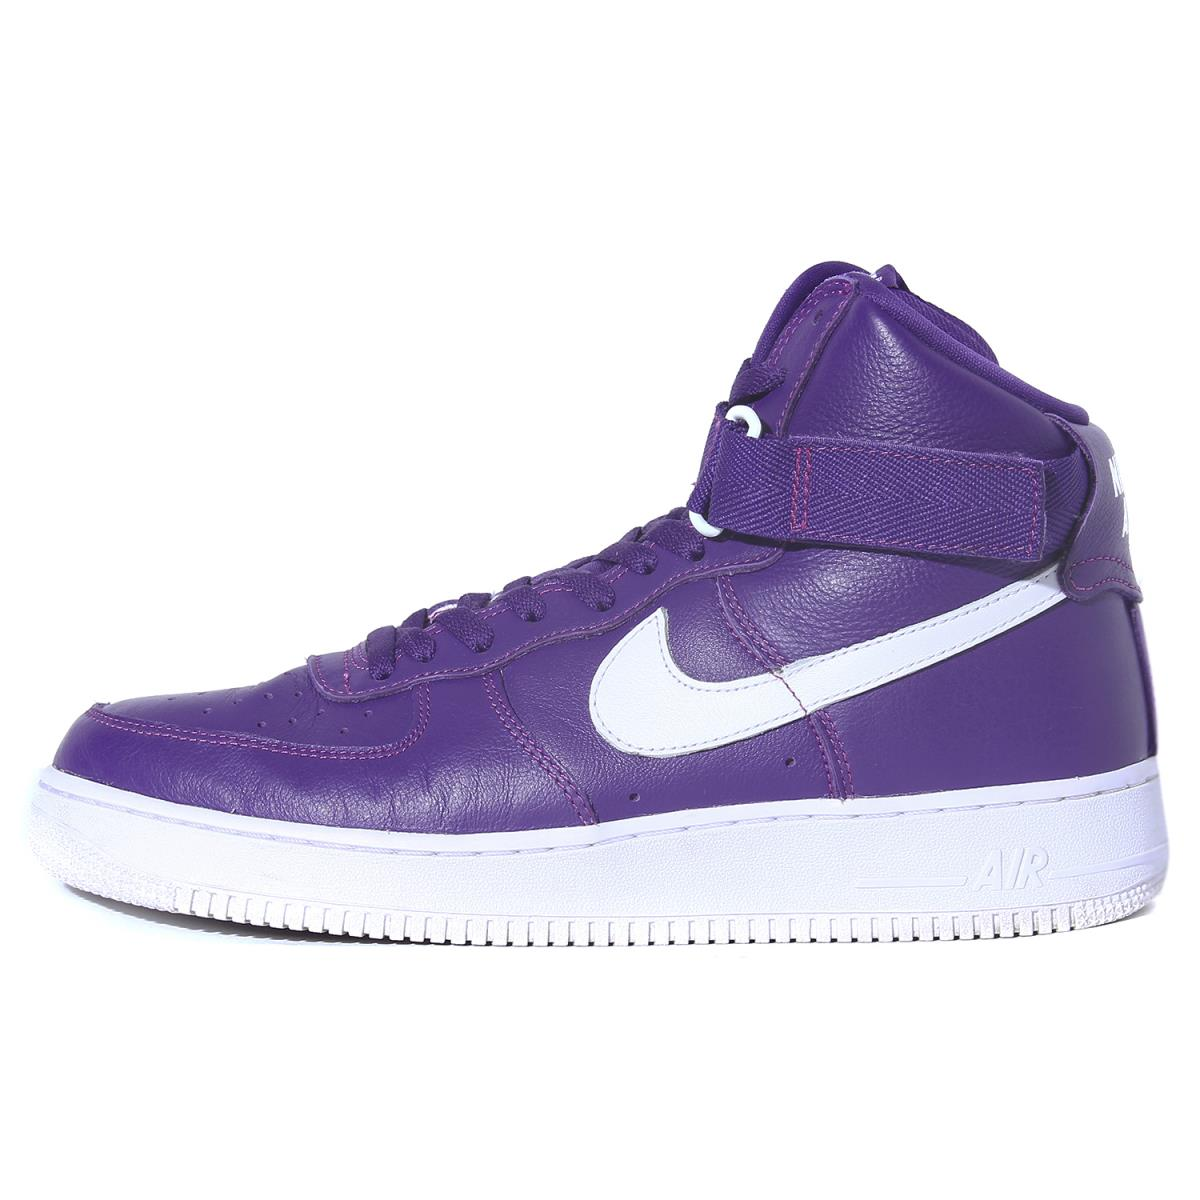 NIKE (ナイキ) NIKELAB AIR FORCE 1 HIGH RETRO QS COLOR OF THE MONTH PACK パープル US10.5(28.5cm) 【美品】【K1888】【中古】【あす楽☆対応可】